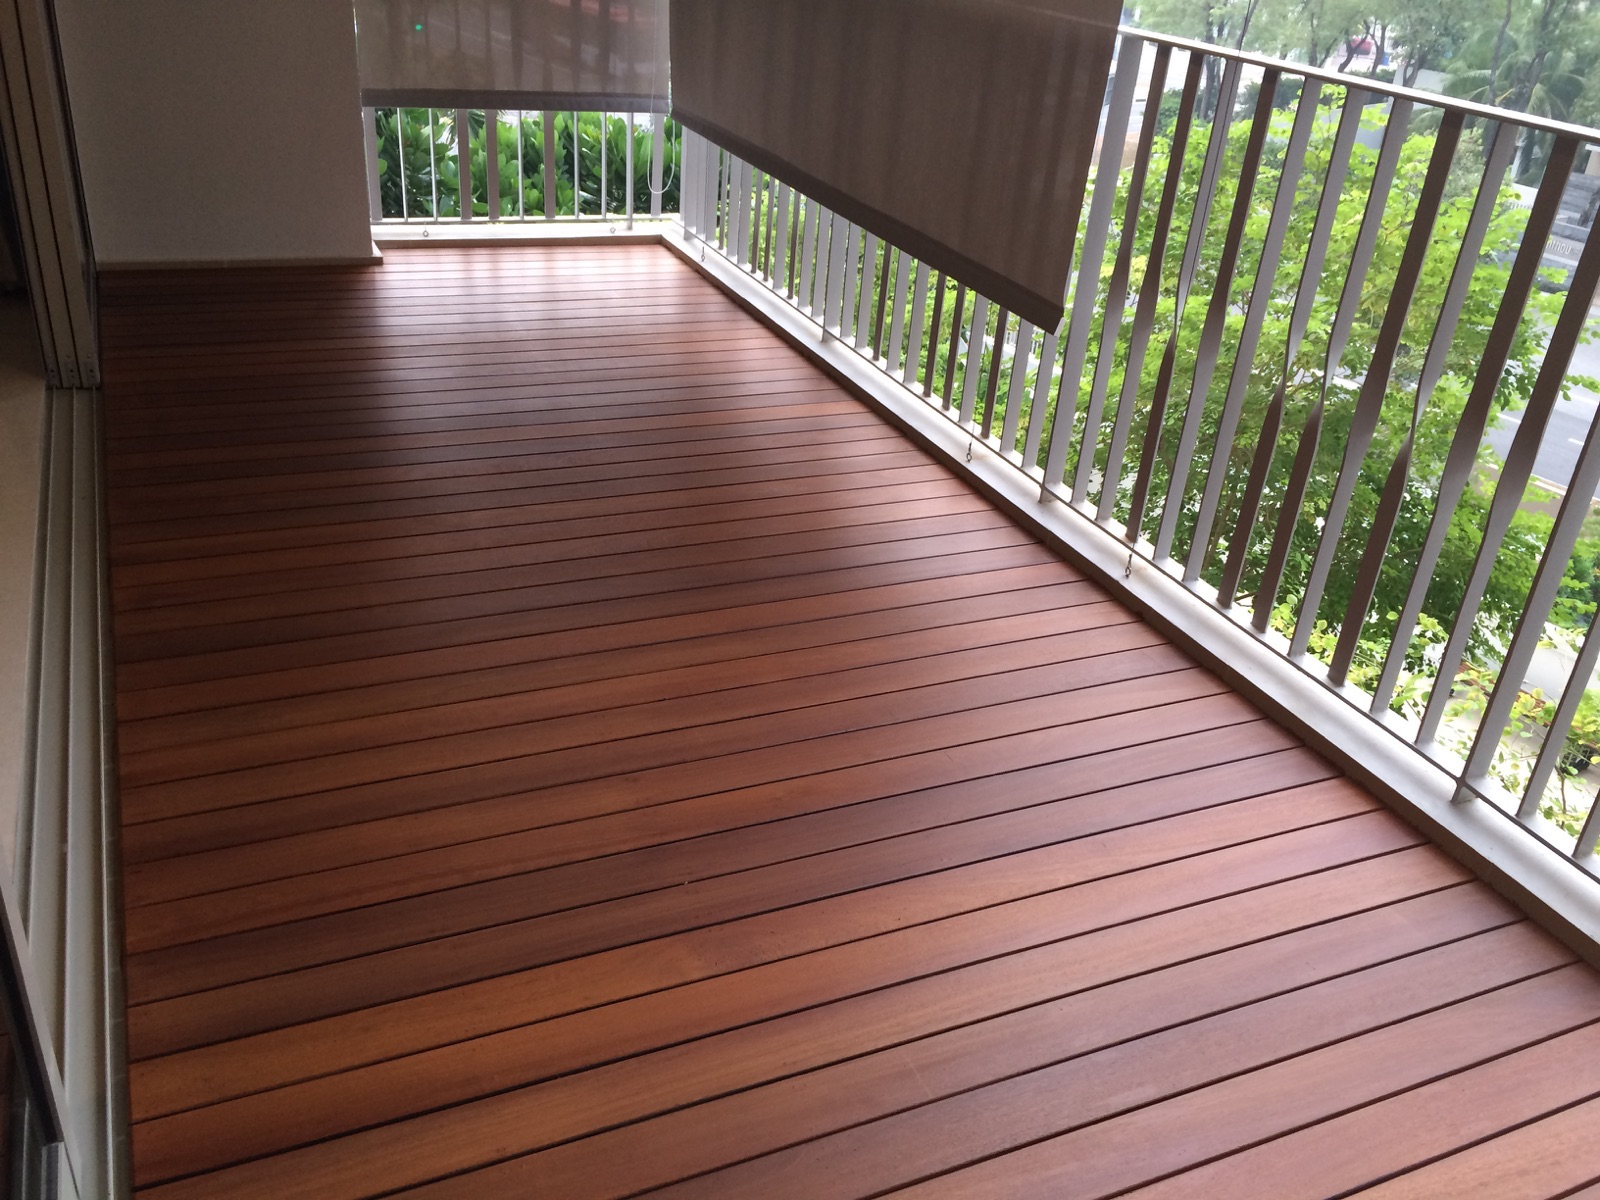 Balcony decking in singapore how to pick the best material for Composite flooring for decks